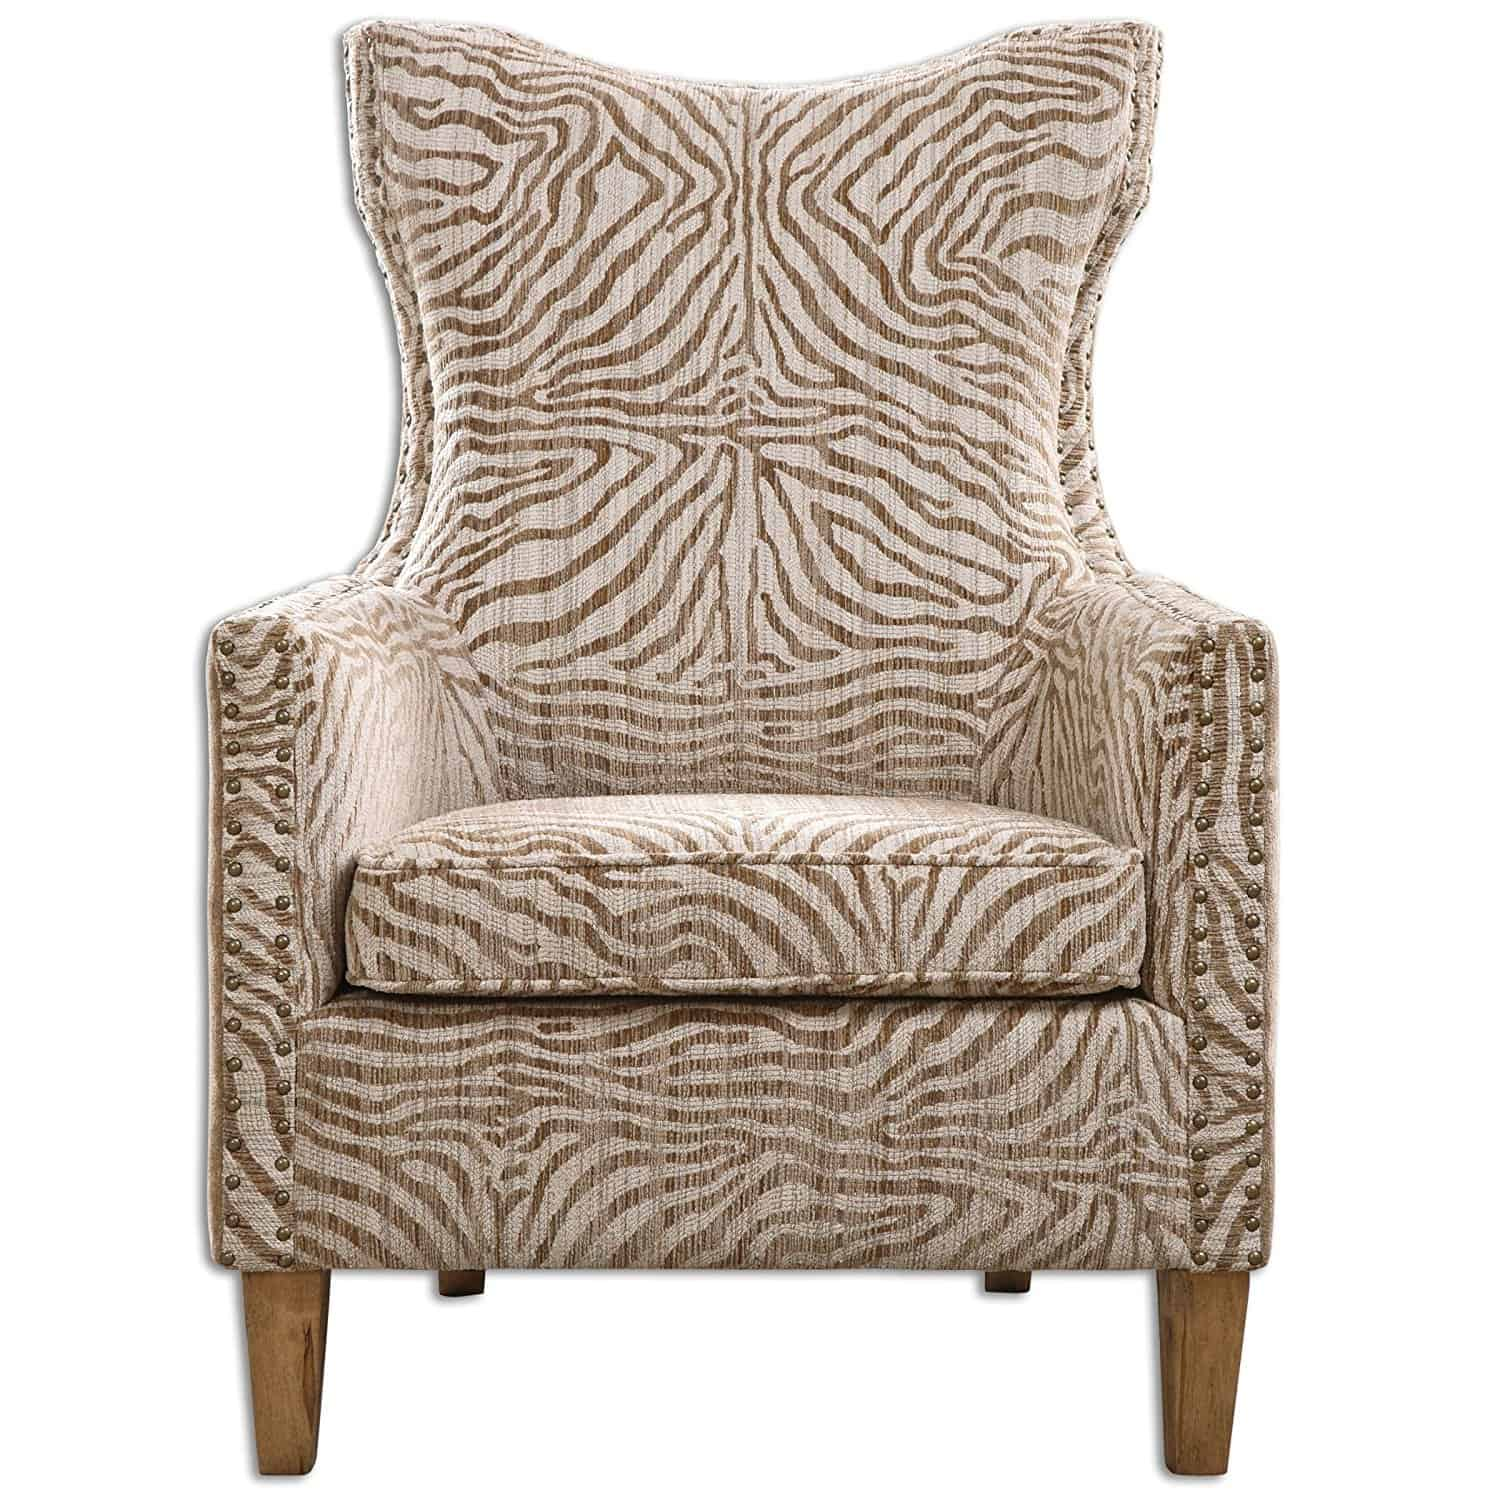 contemporary african furniture. Beige Jungle Print Zebra Arm Chair Contemporary African Furniture V